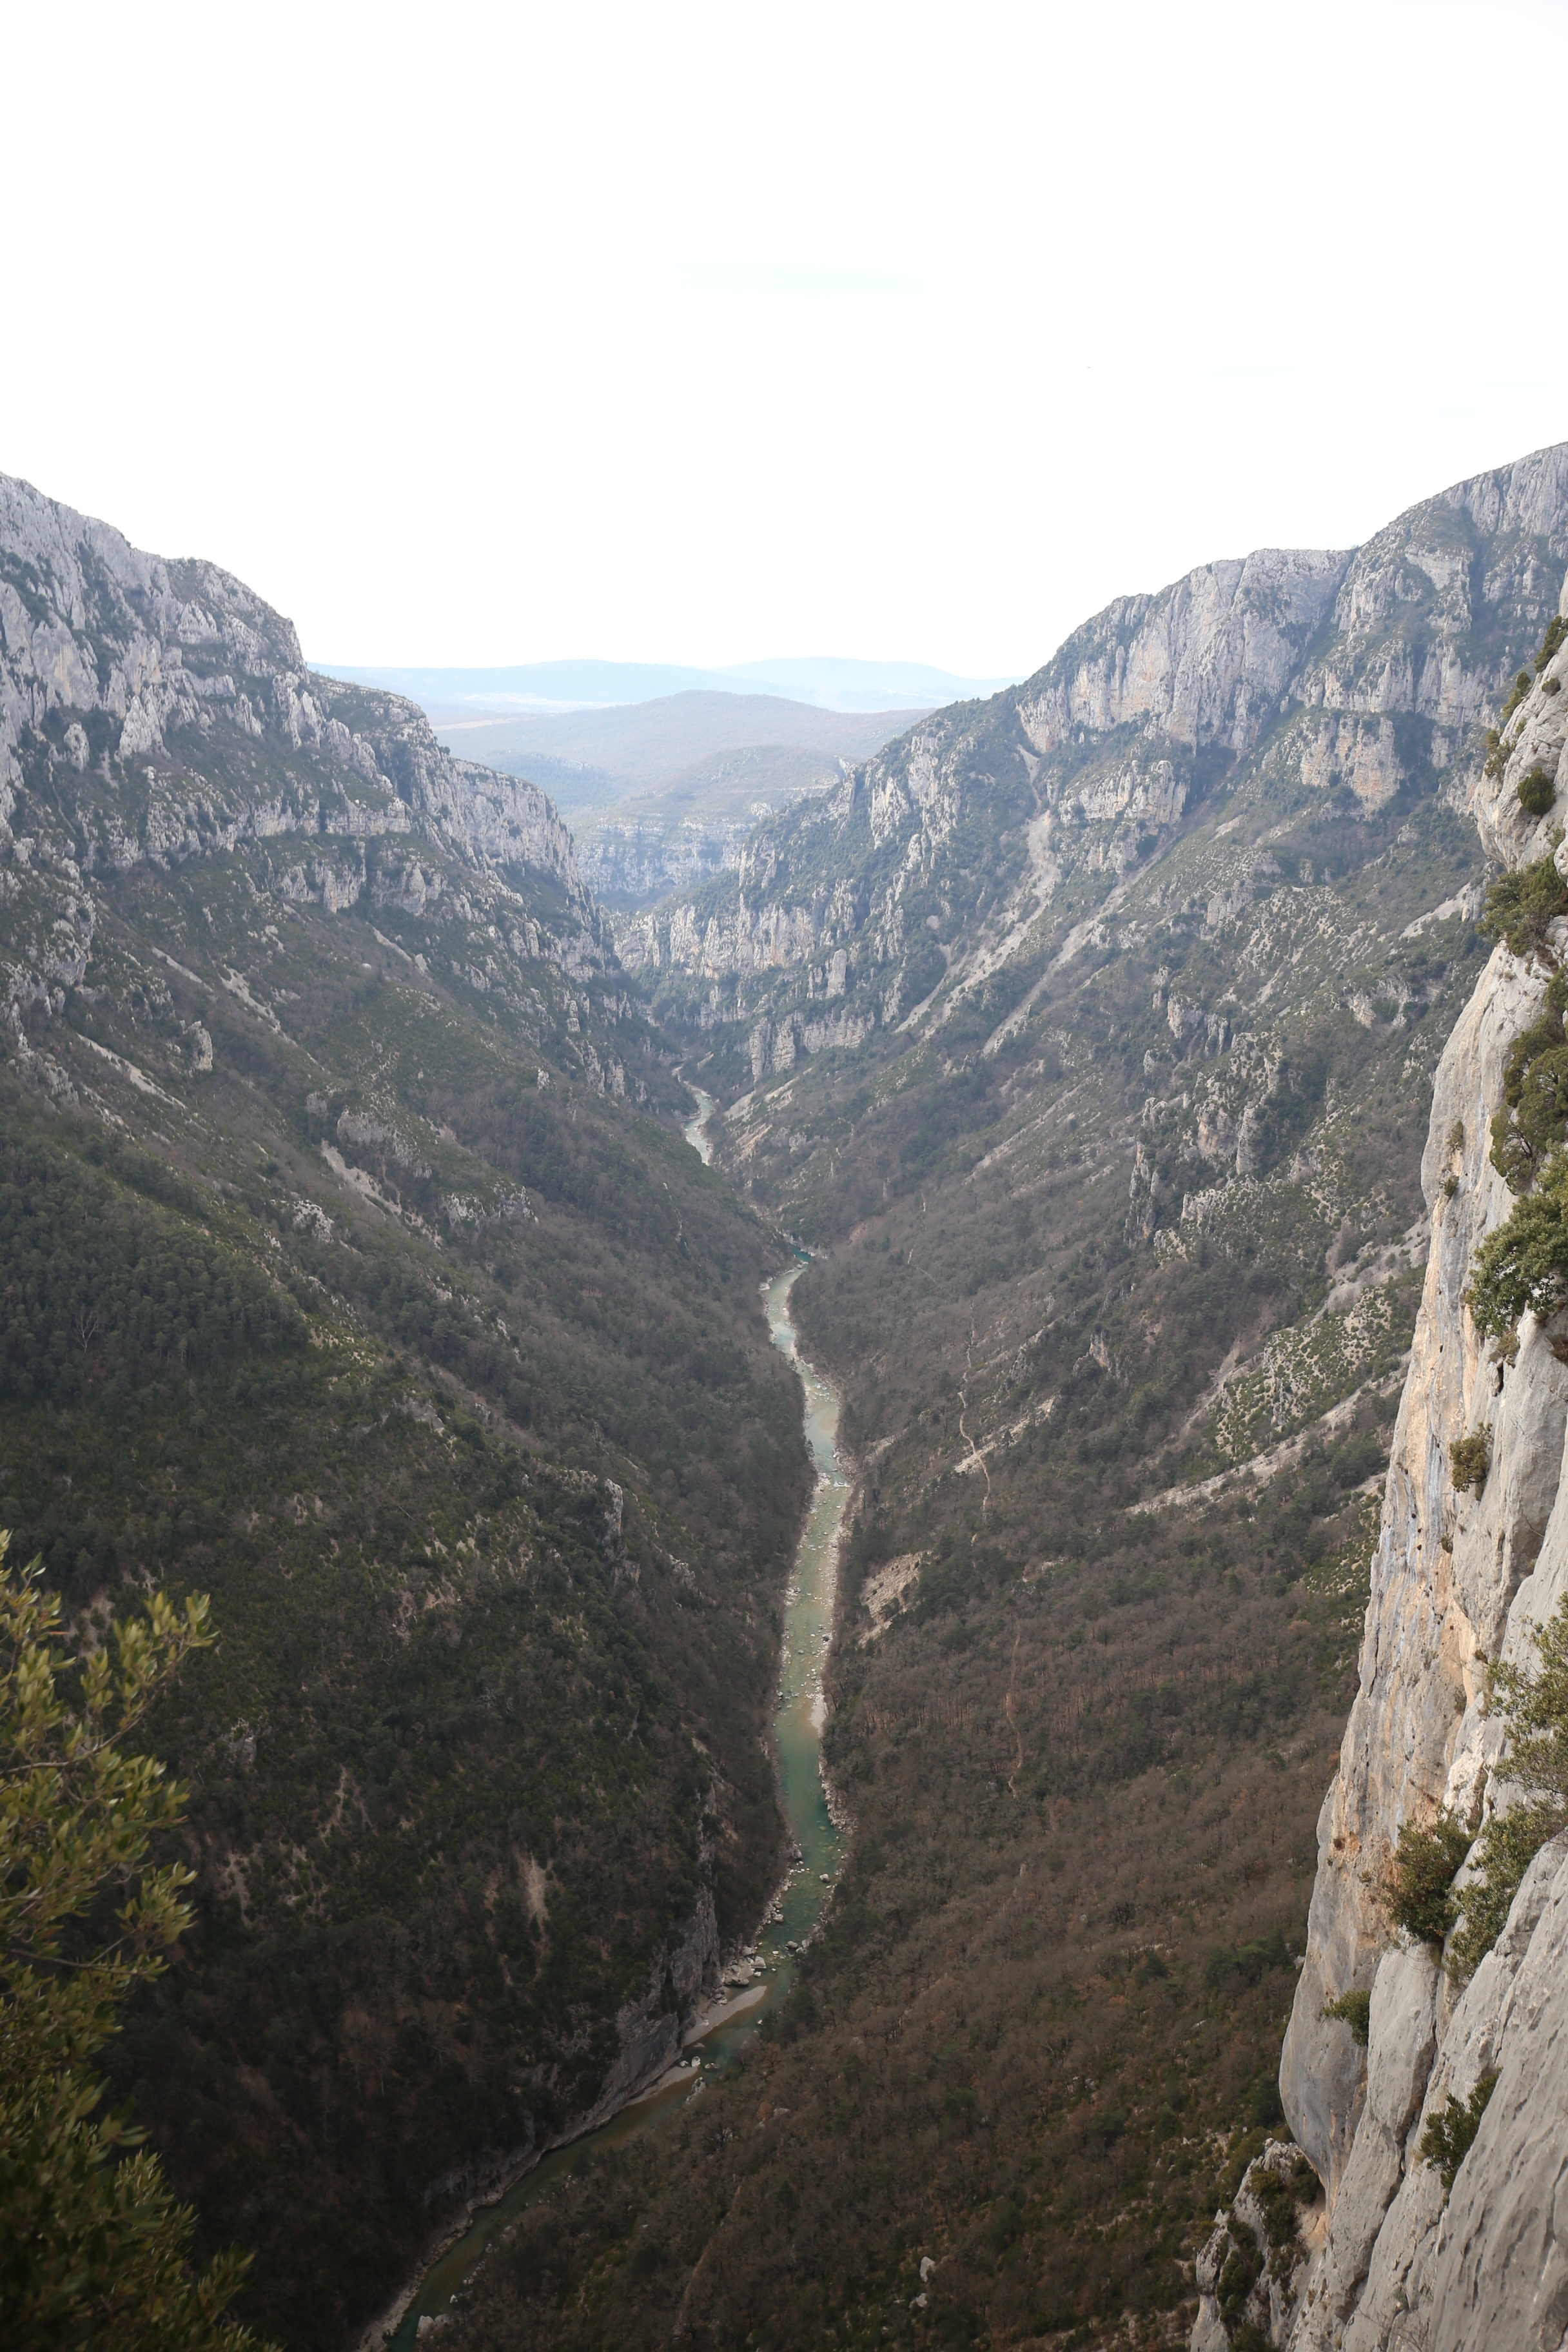 The view of the Verdon Gorge while driving the high roads.